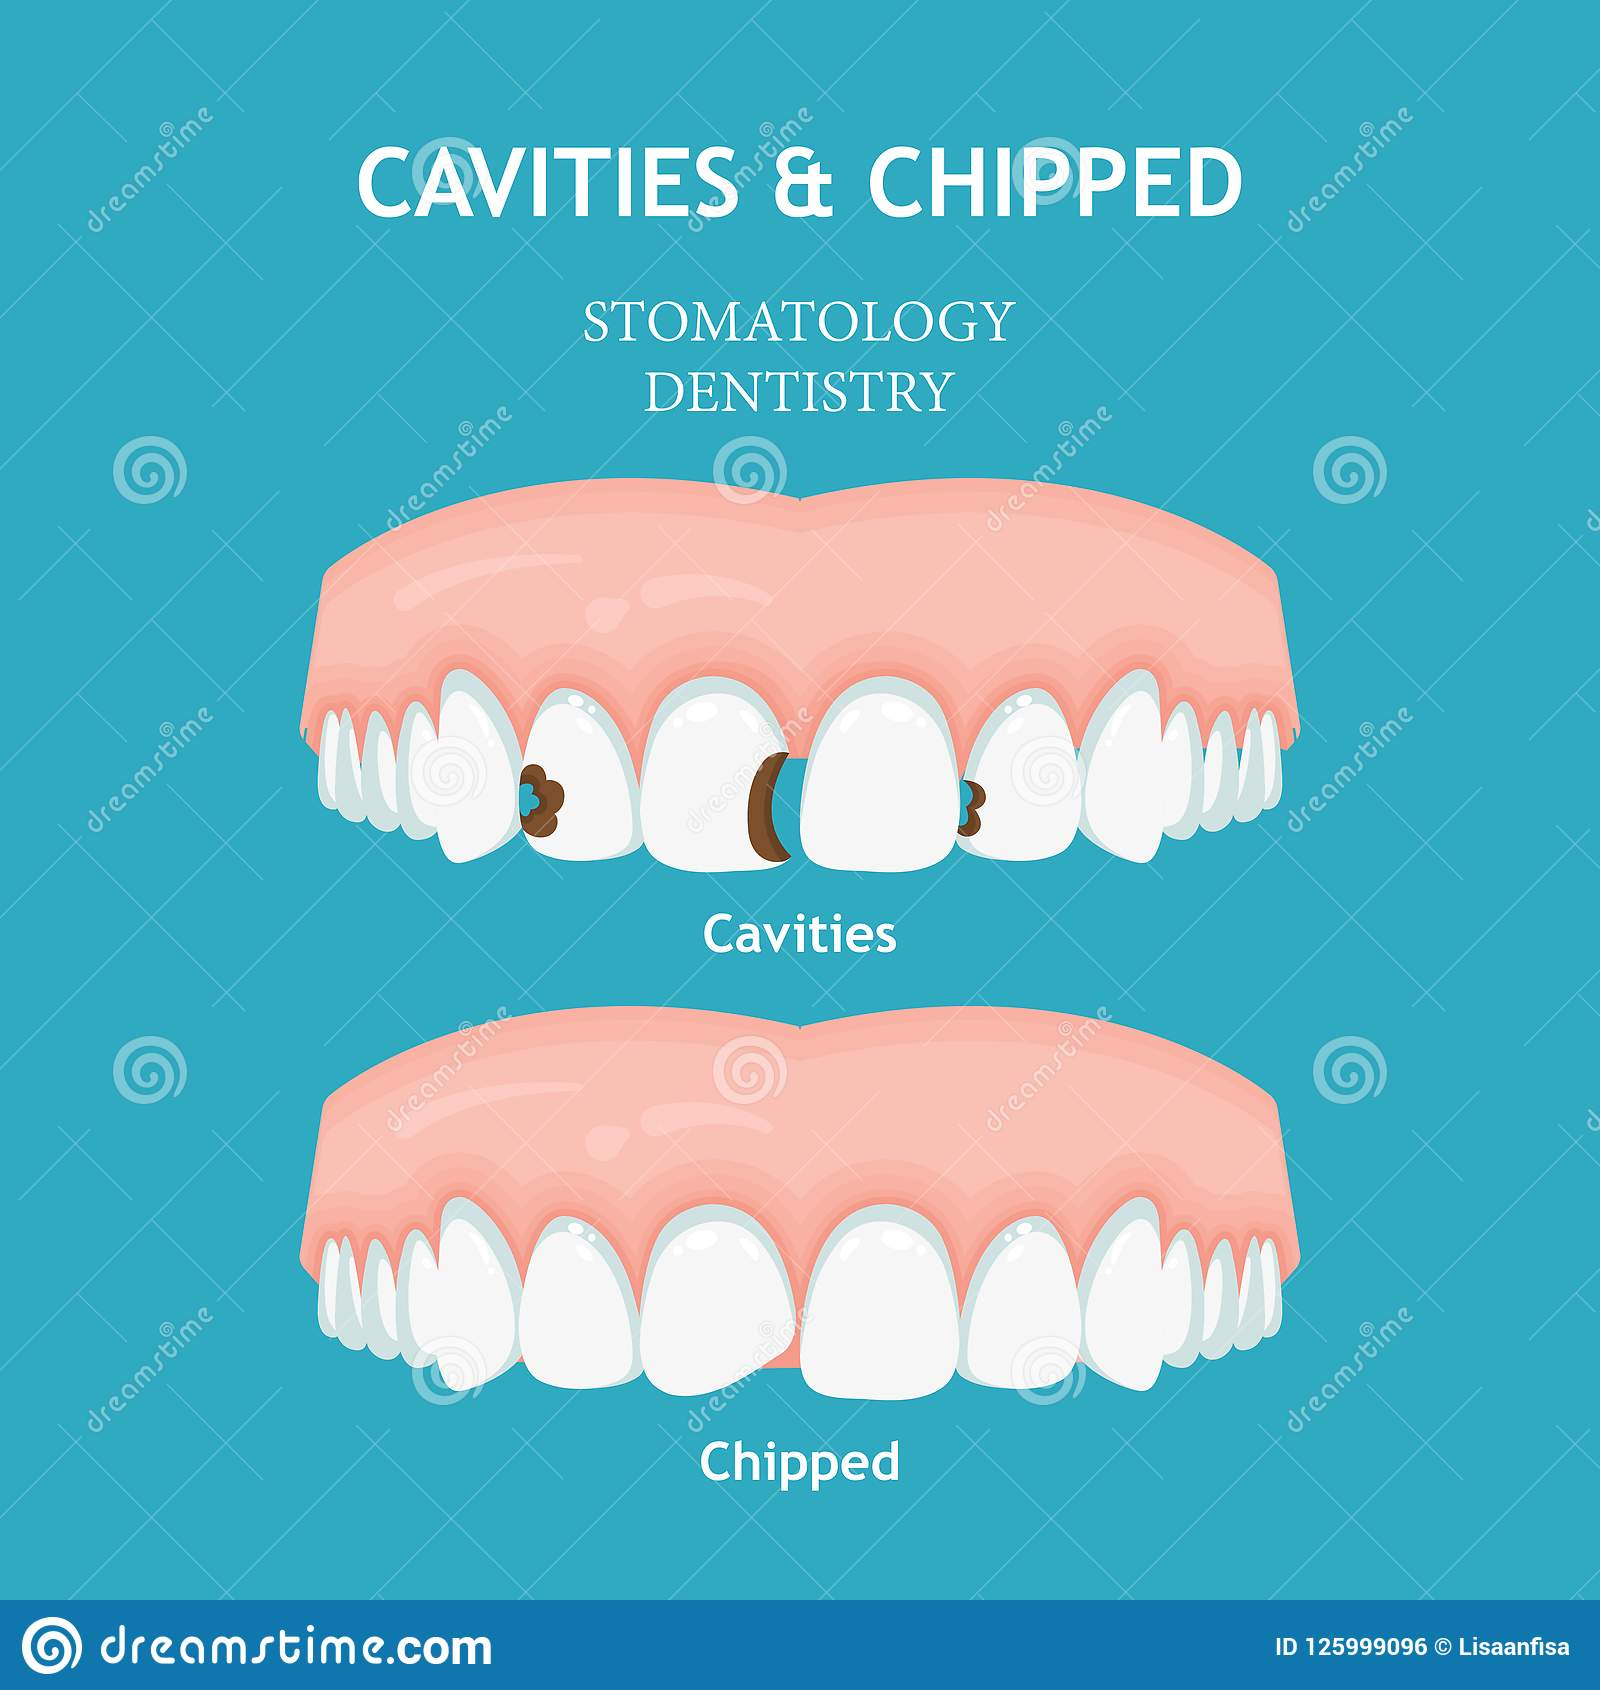 Dental poster. Dentistry and stomatology poster. Cavities and chipped